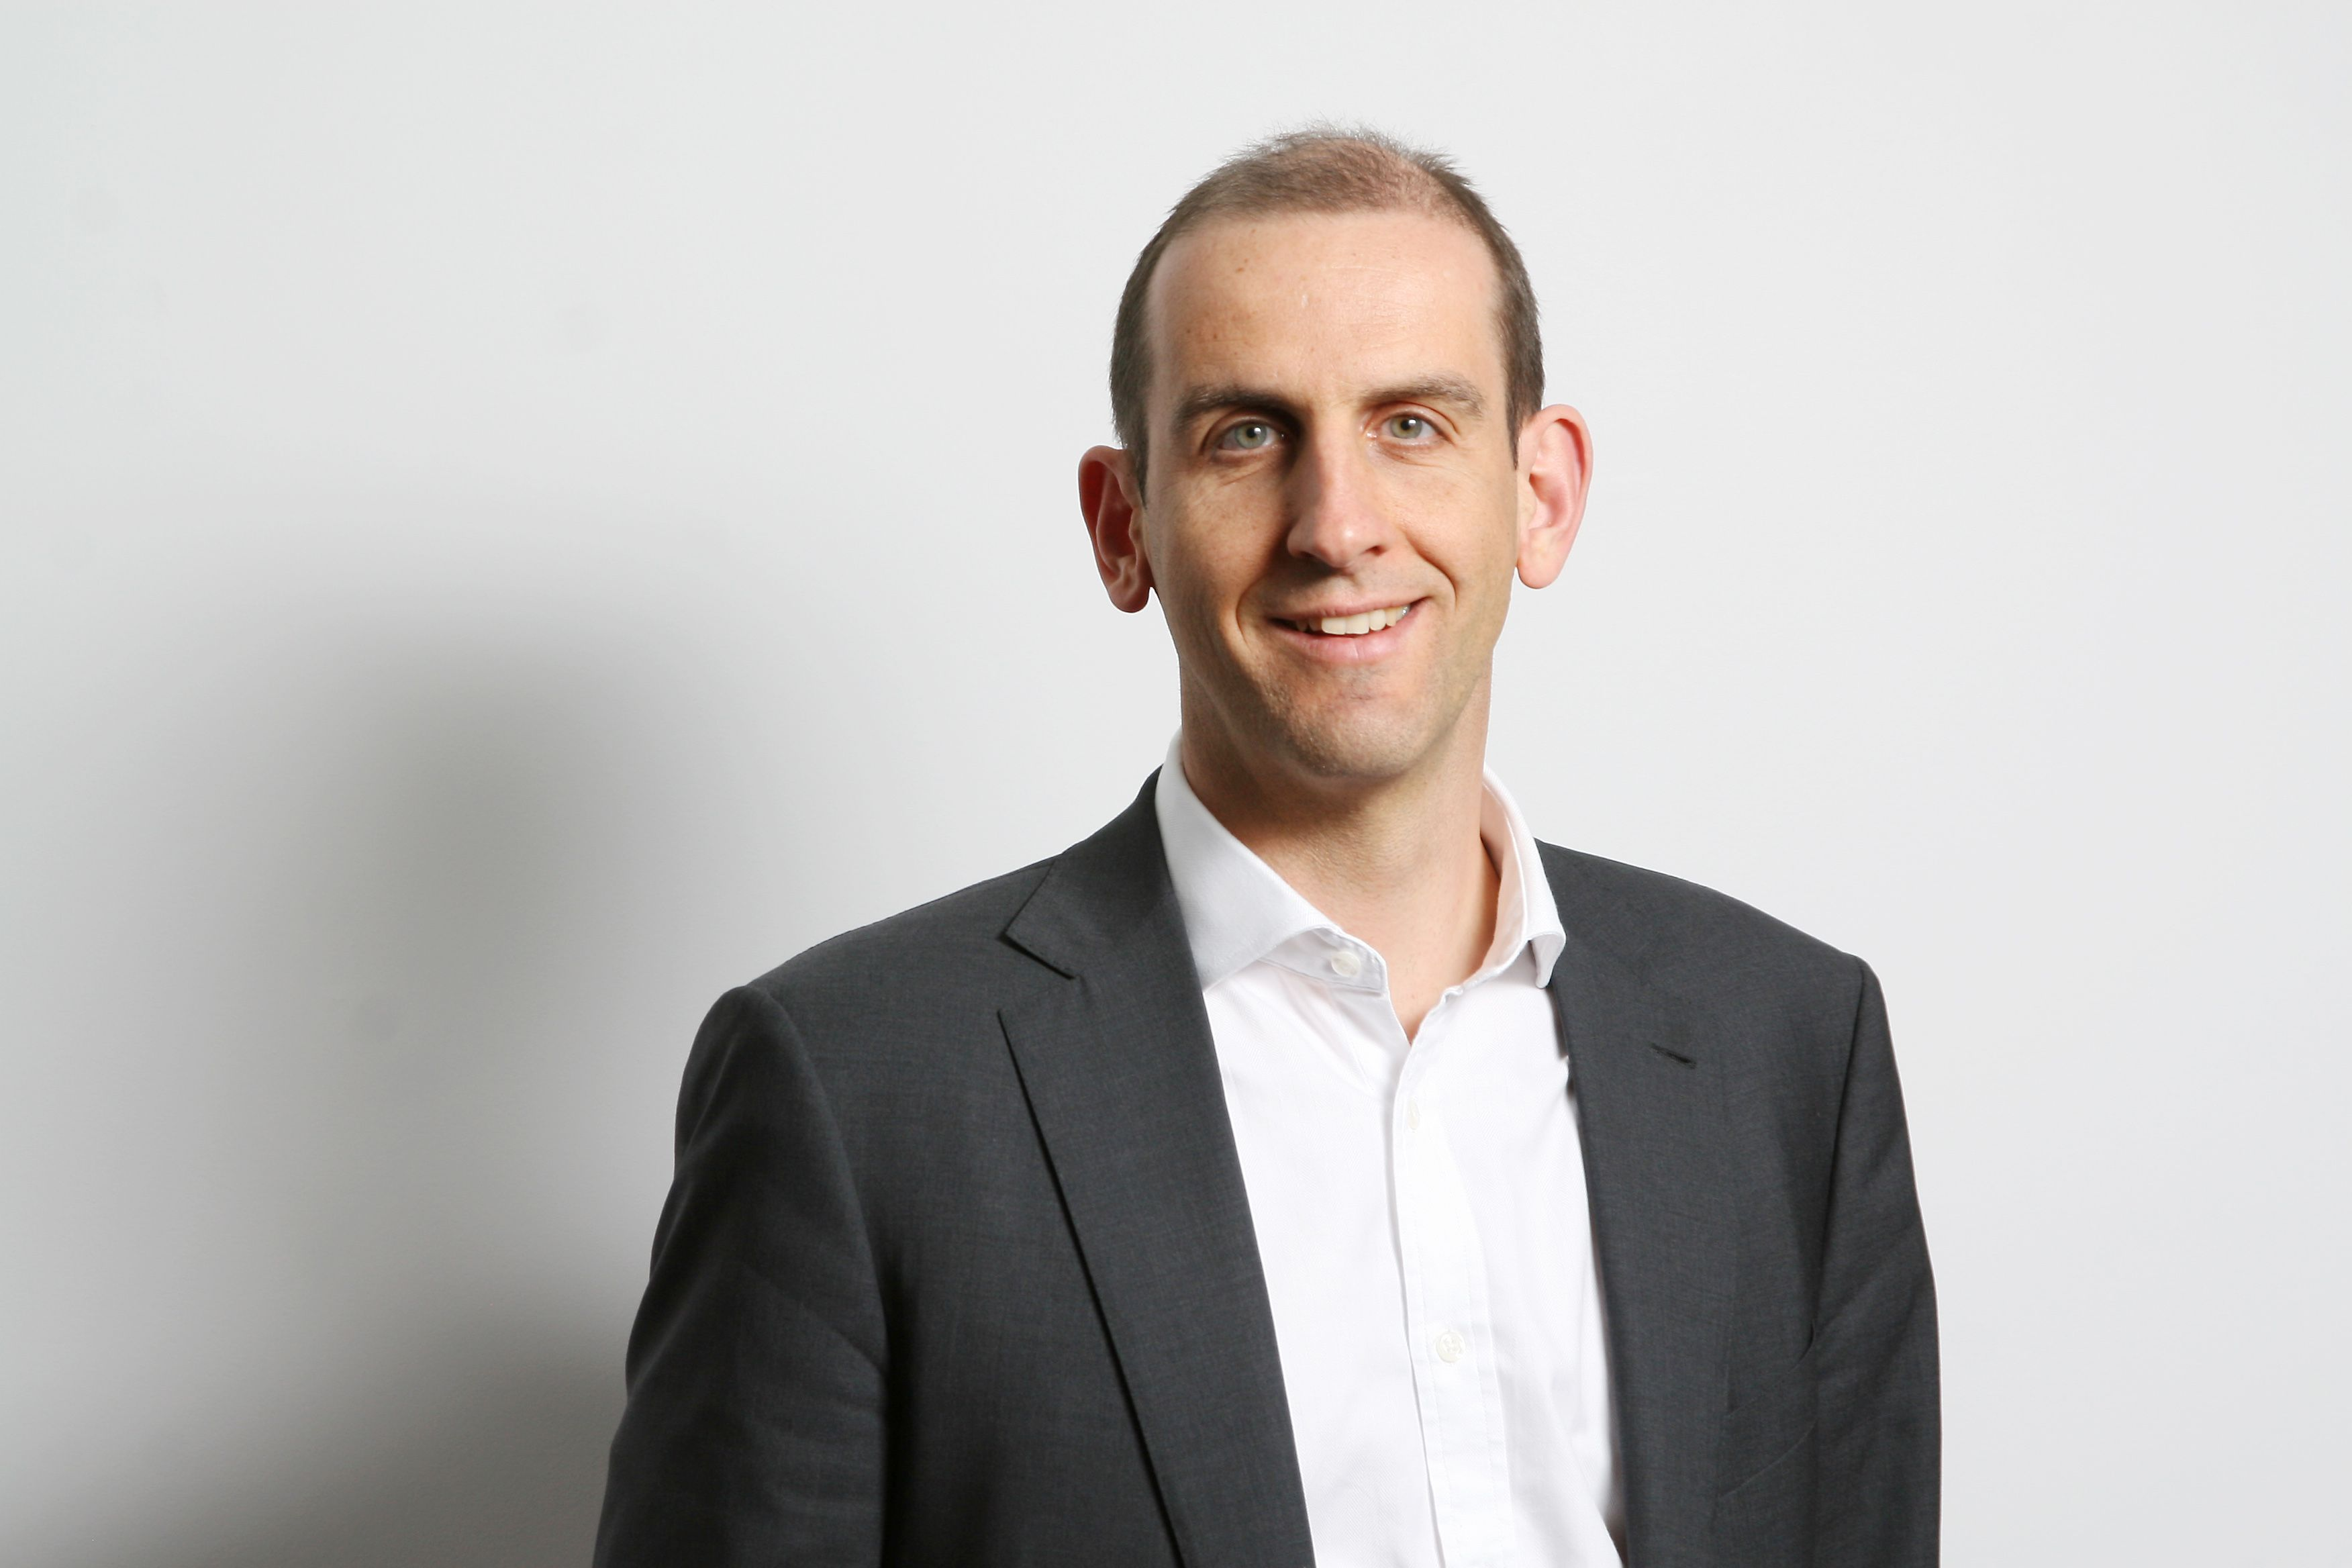 Christoph Gugelmann, co-founder and CEO